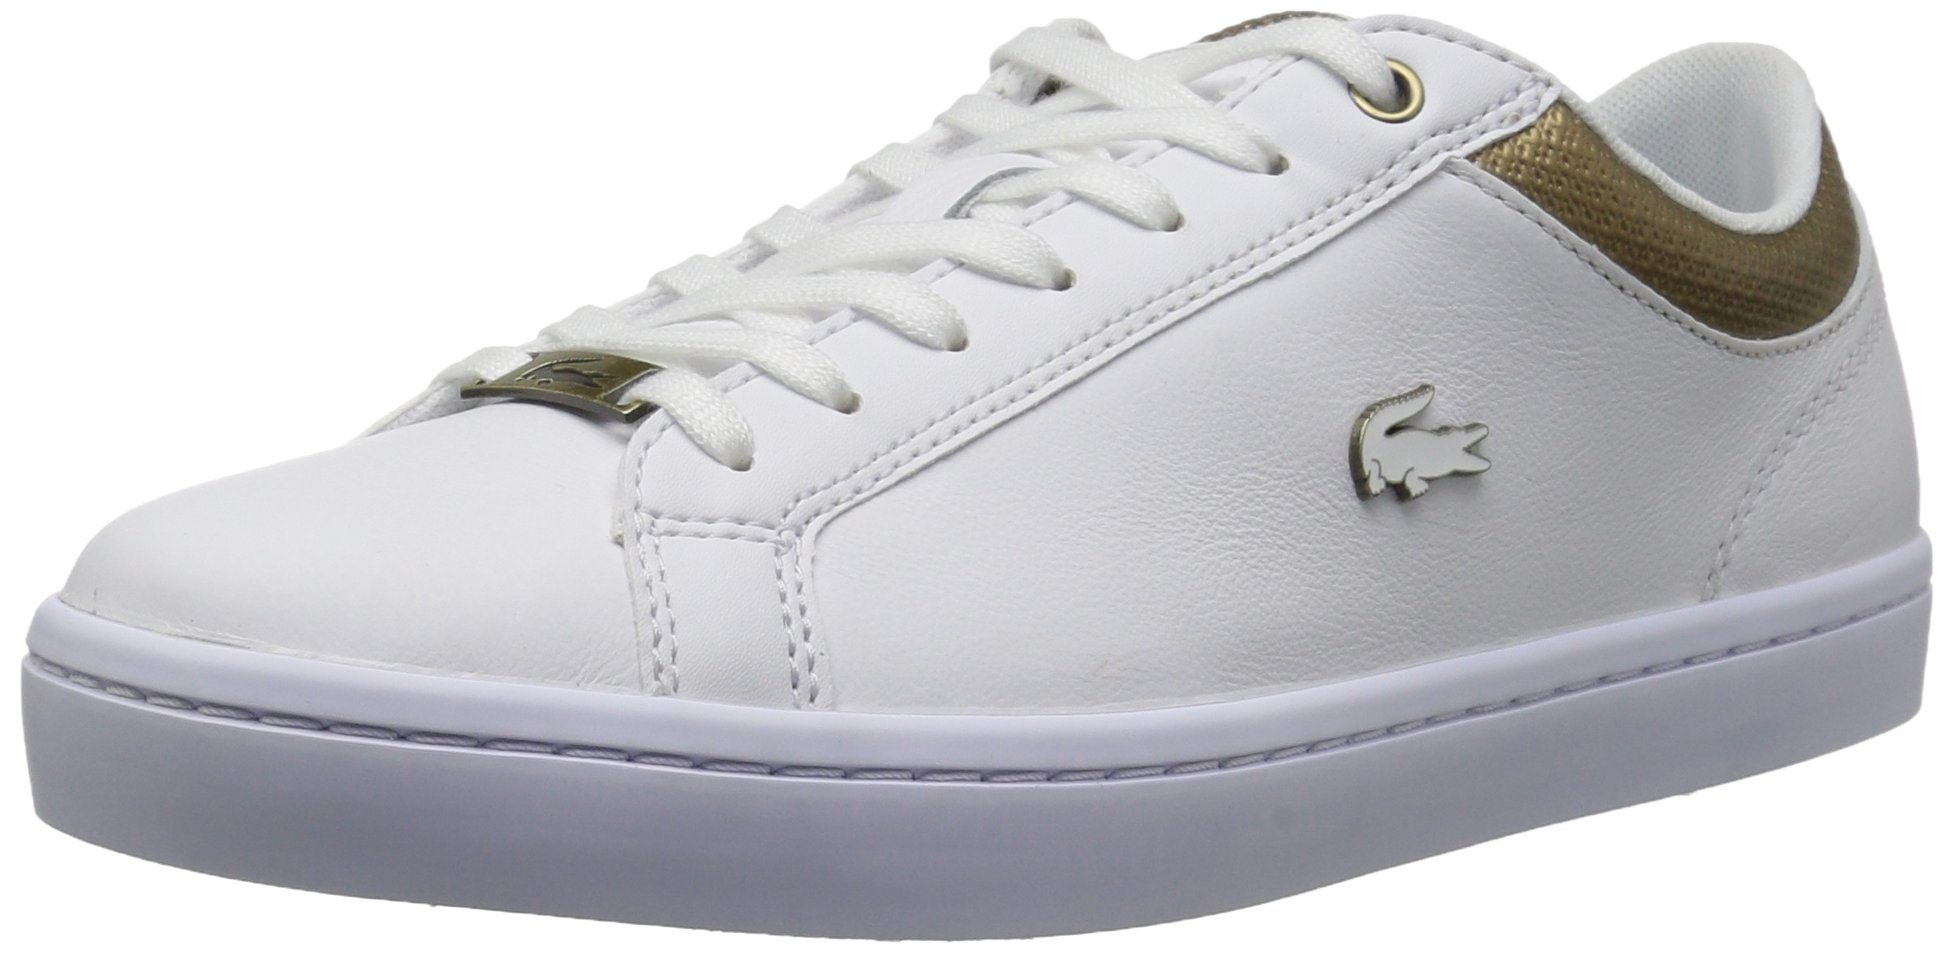 Lacoste Women's Straightset Sneakers,White/Gold Leather,7.5 M US